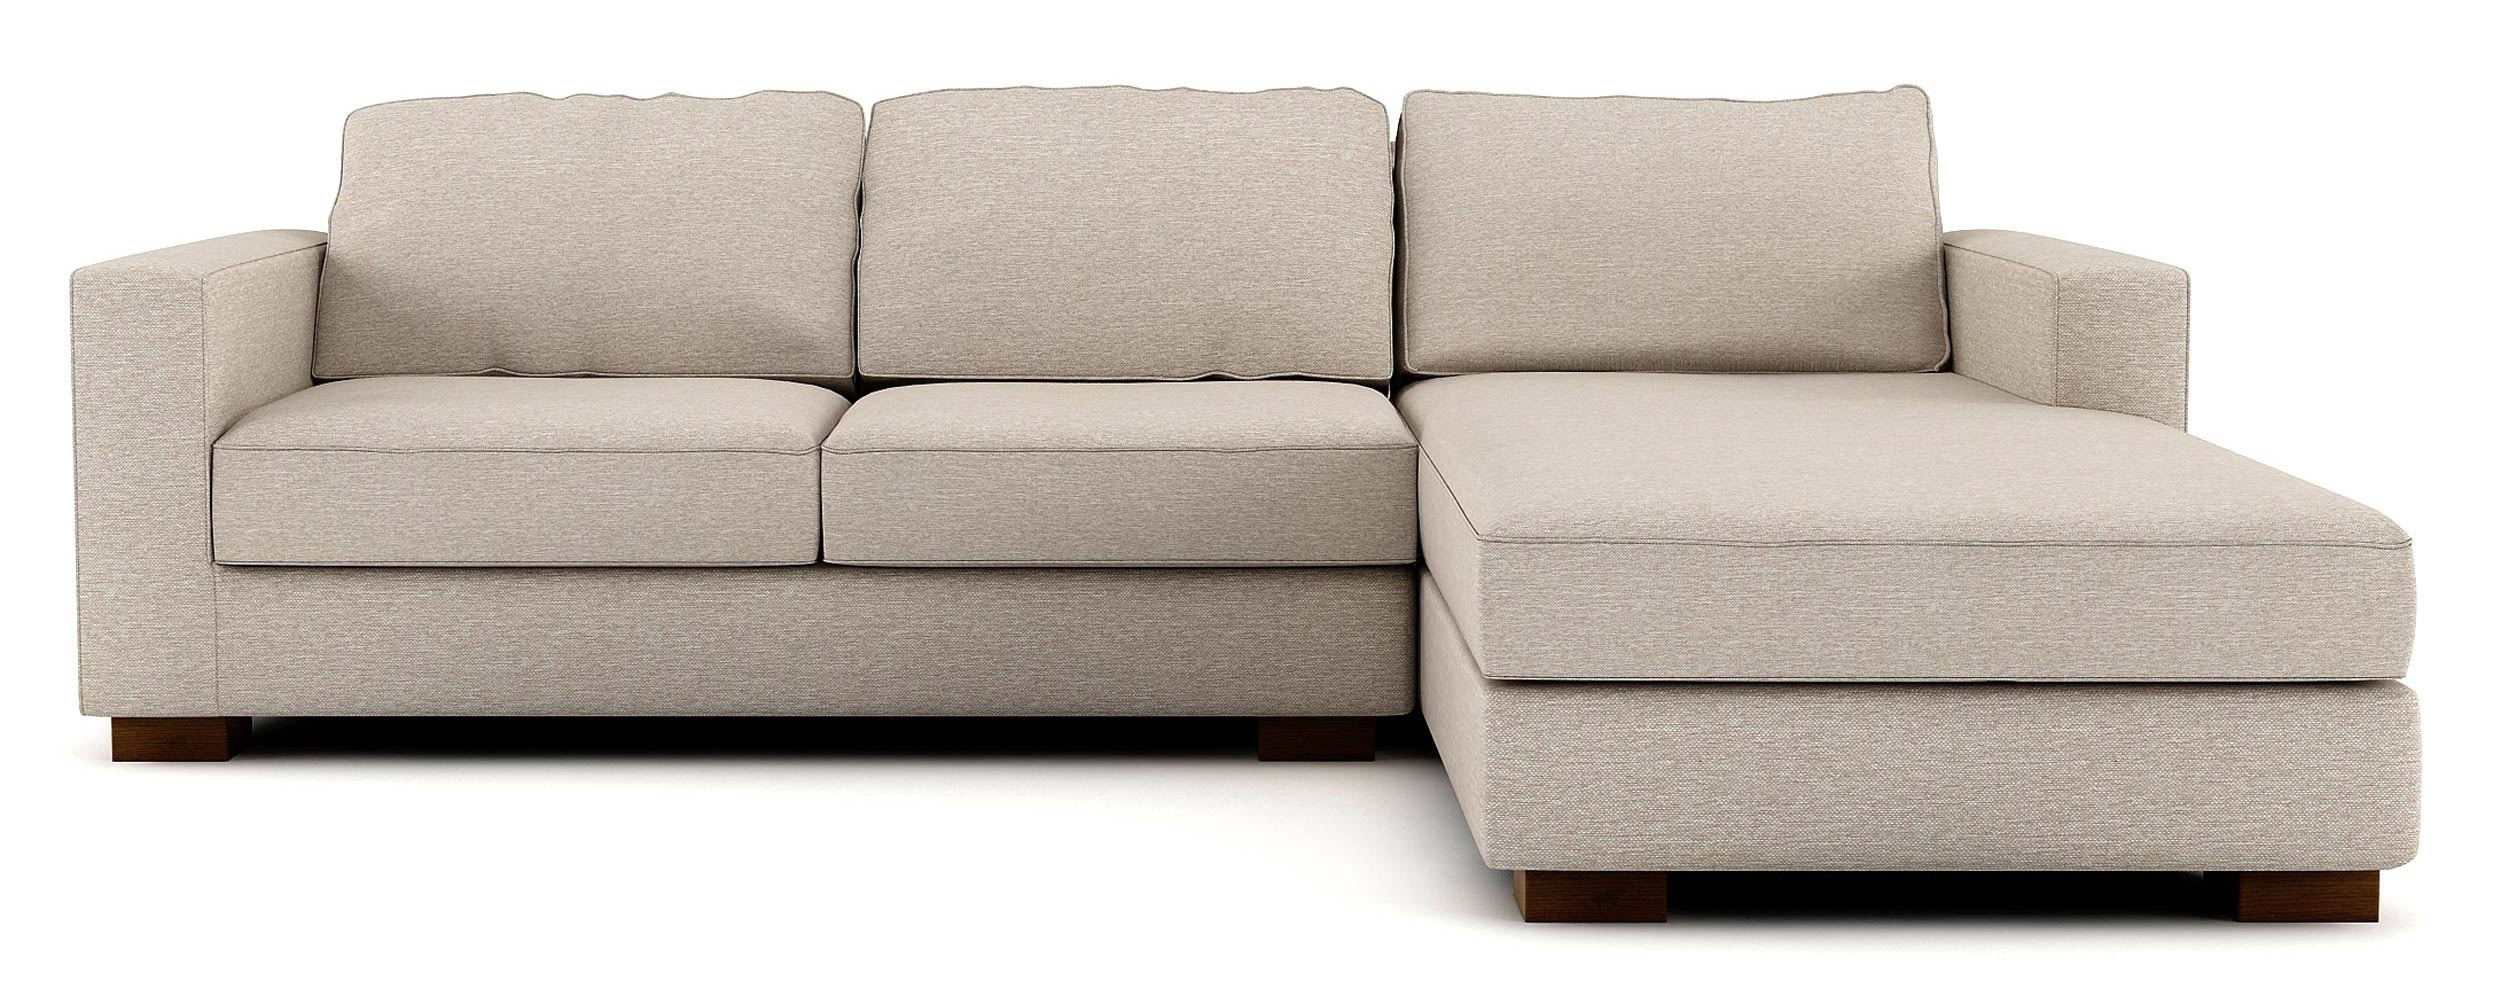 Eco Friendly Sectional Sofa, Non Toxic Sectionals   Stem With Eco Friendly Sectional Sofas (Photo 8 of 10)